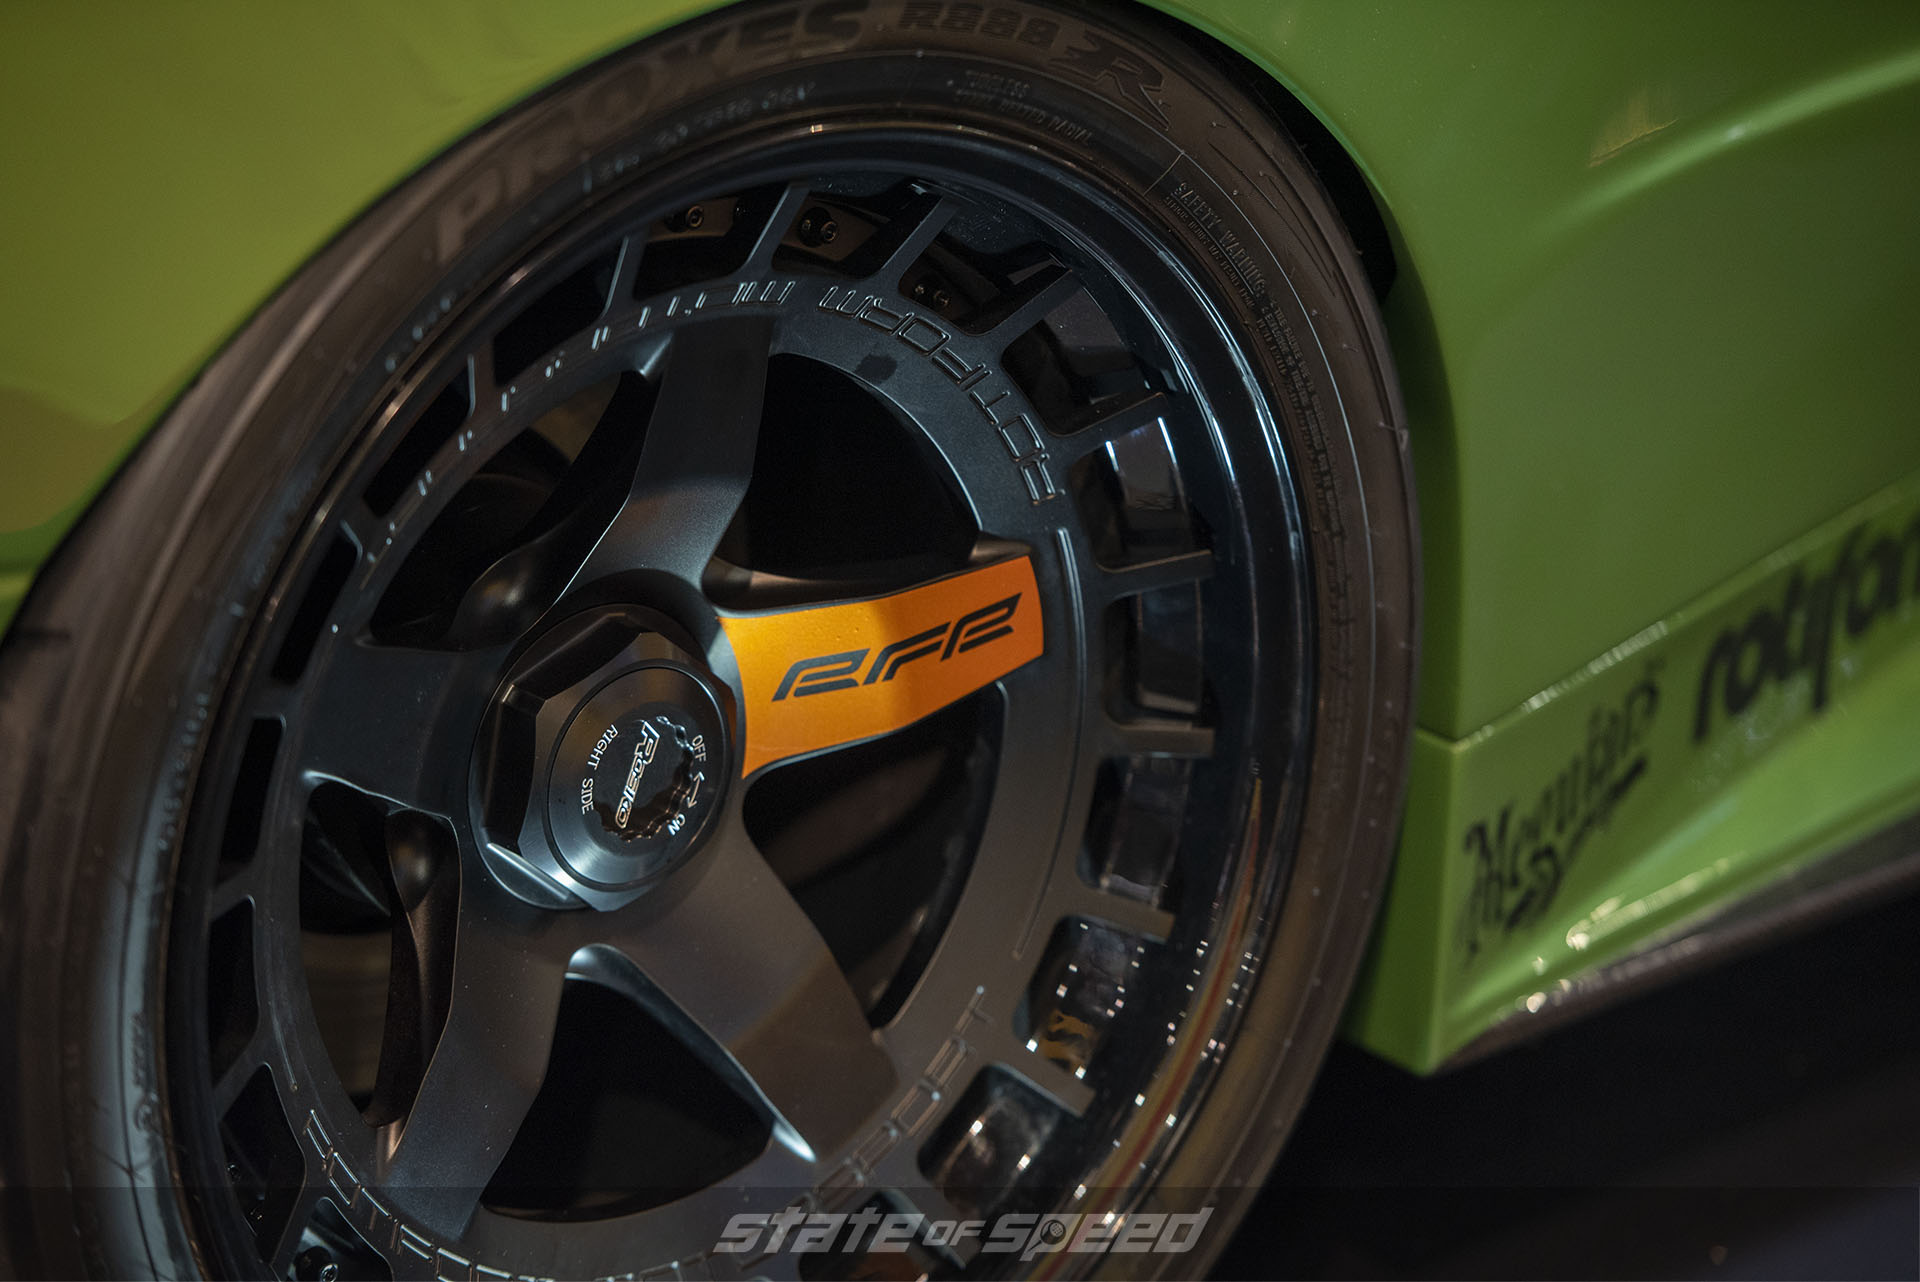 Rebellion Forge Racing BMW E30 at Meguiar's Booth for SEMA 2019 with Rotiform wheels